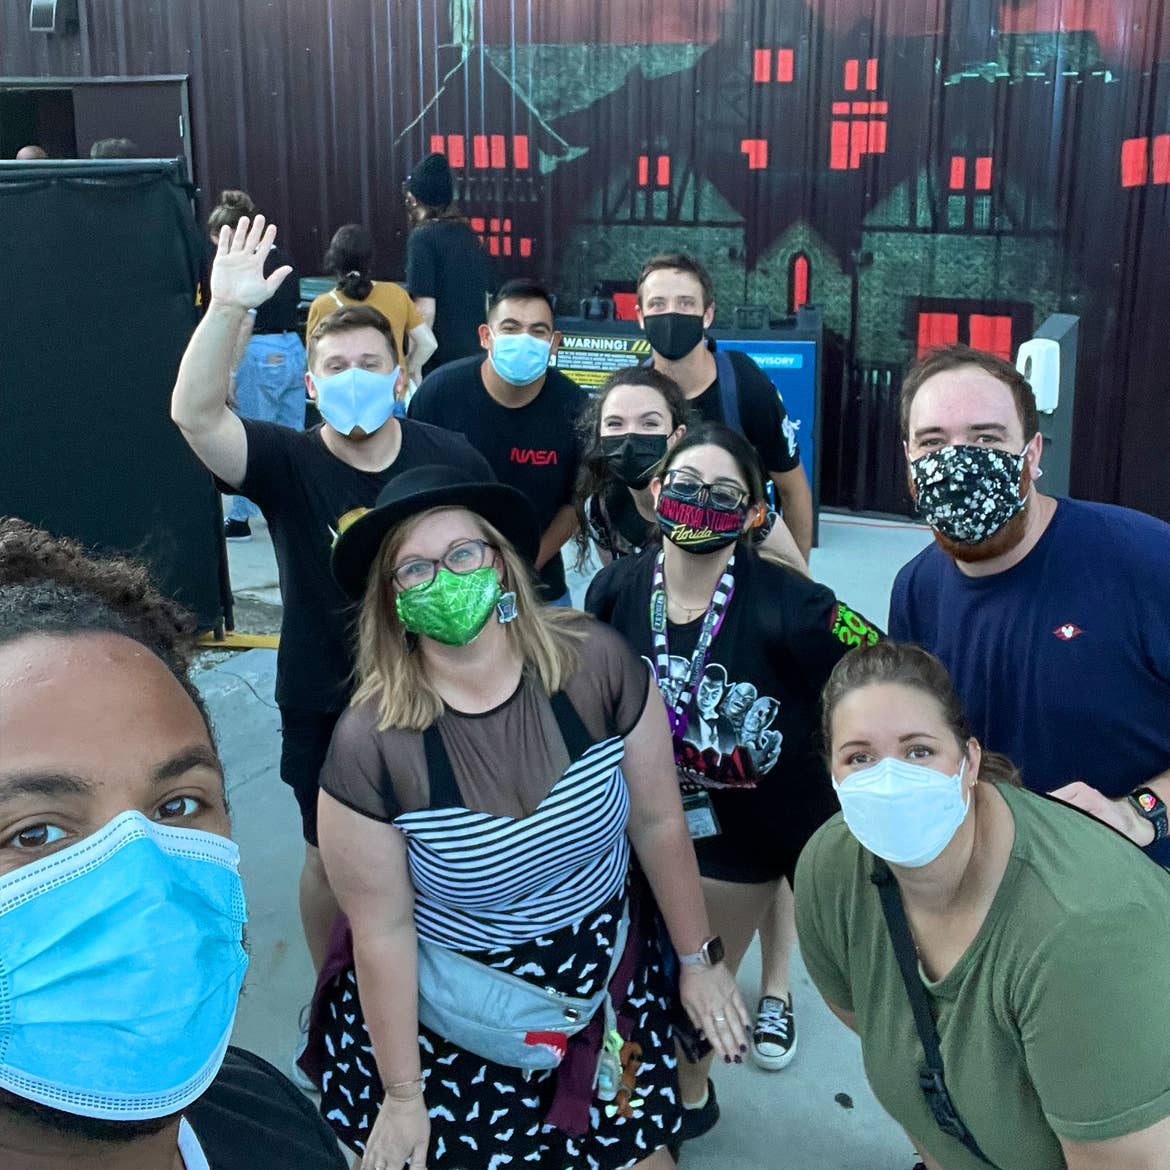 A group of men and women wear safety masks outside of a haunted house.